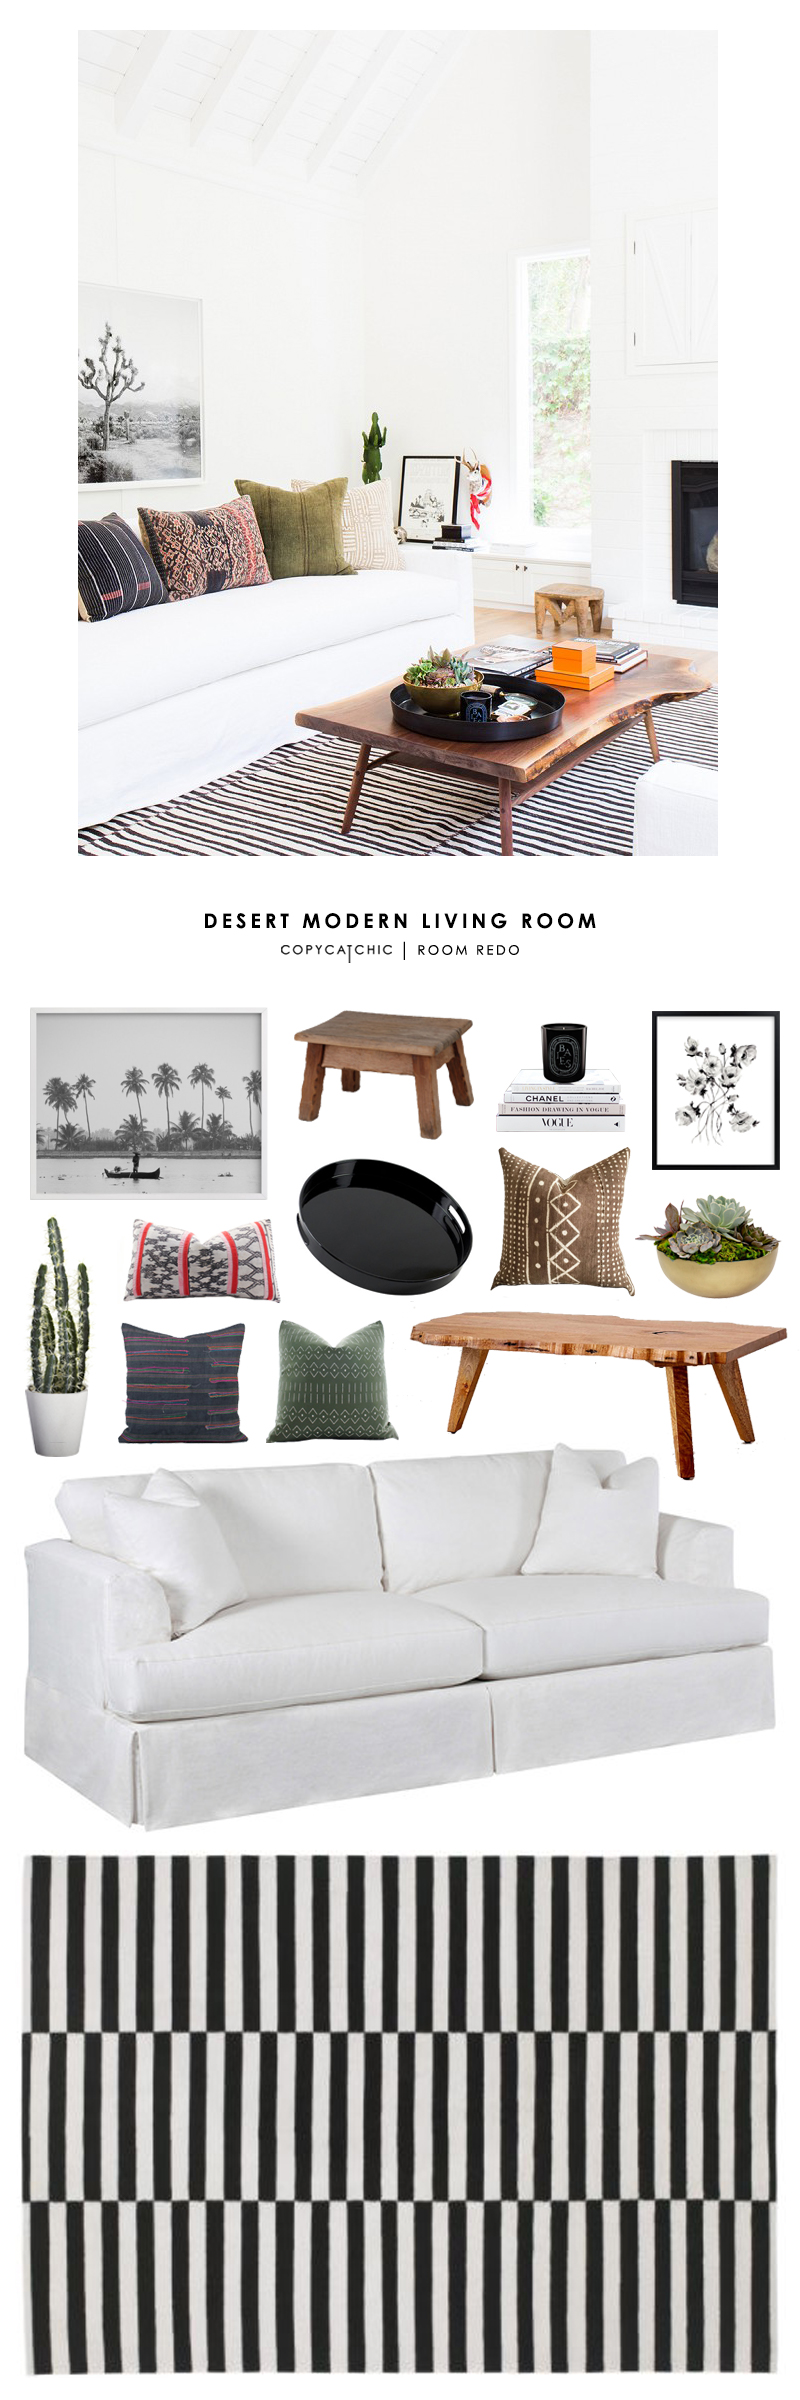 Copy Cat Chic Room Redo Desert Modern Living Room Copy Cat Chic